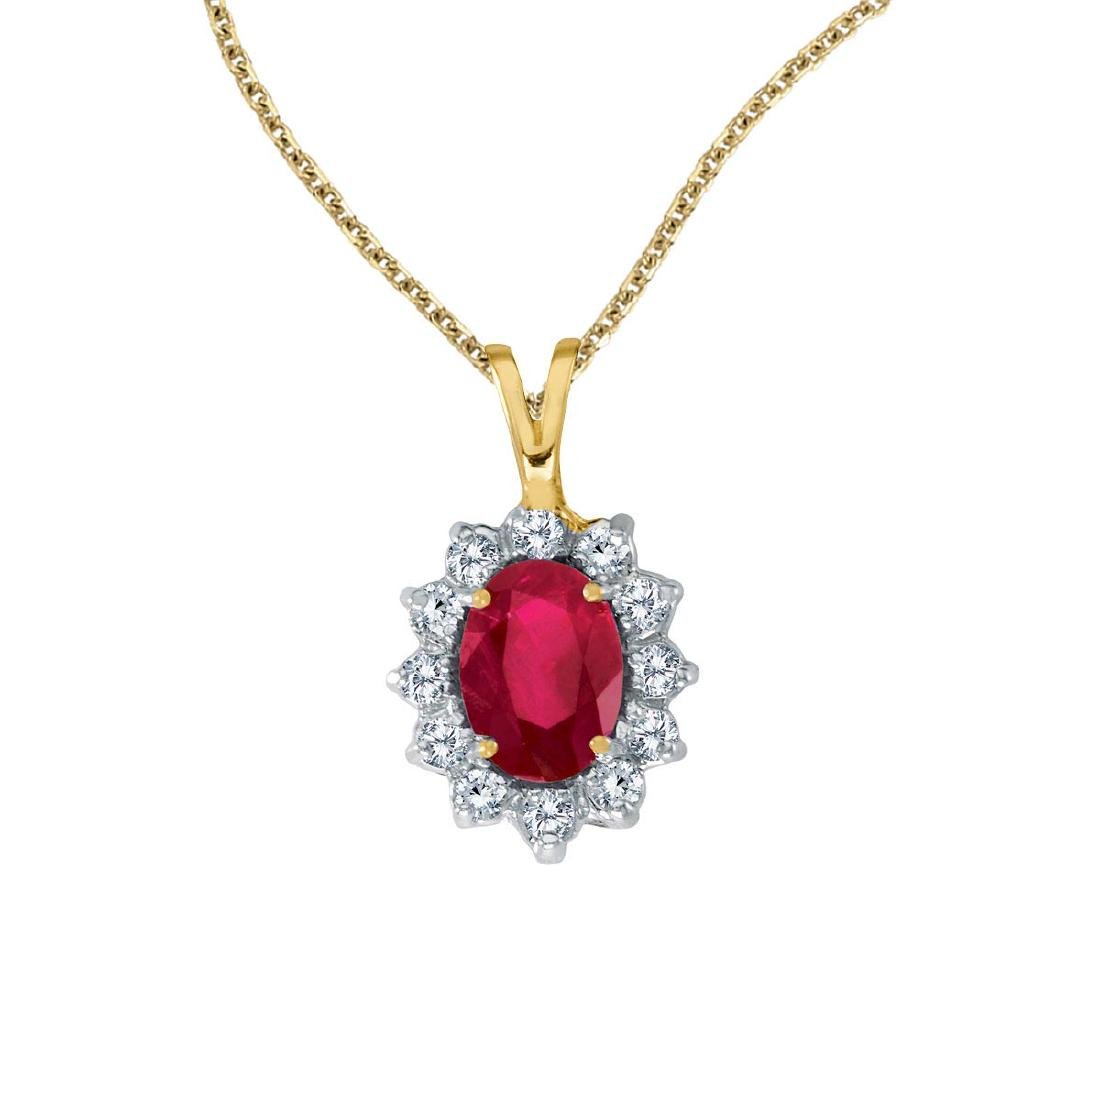 Certified 14k Yellow Gold Oval Ruby Pendant with Diamon